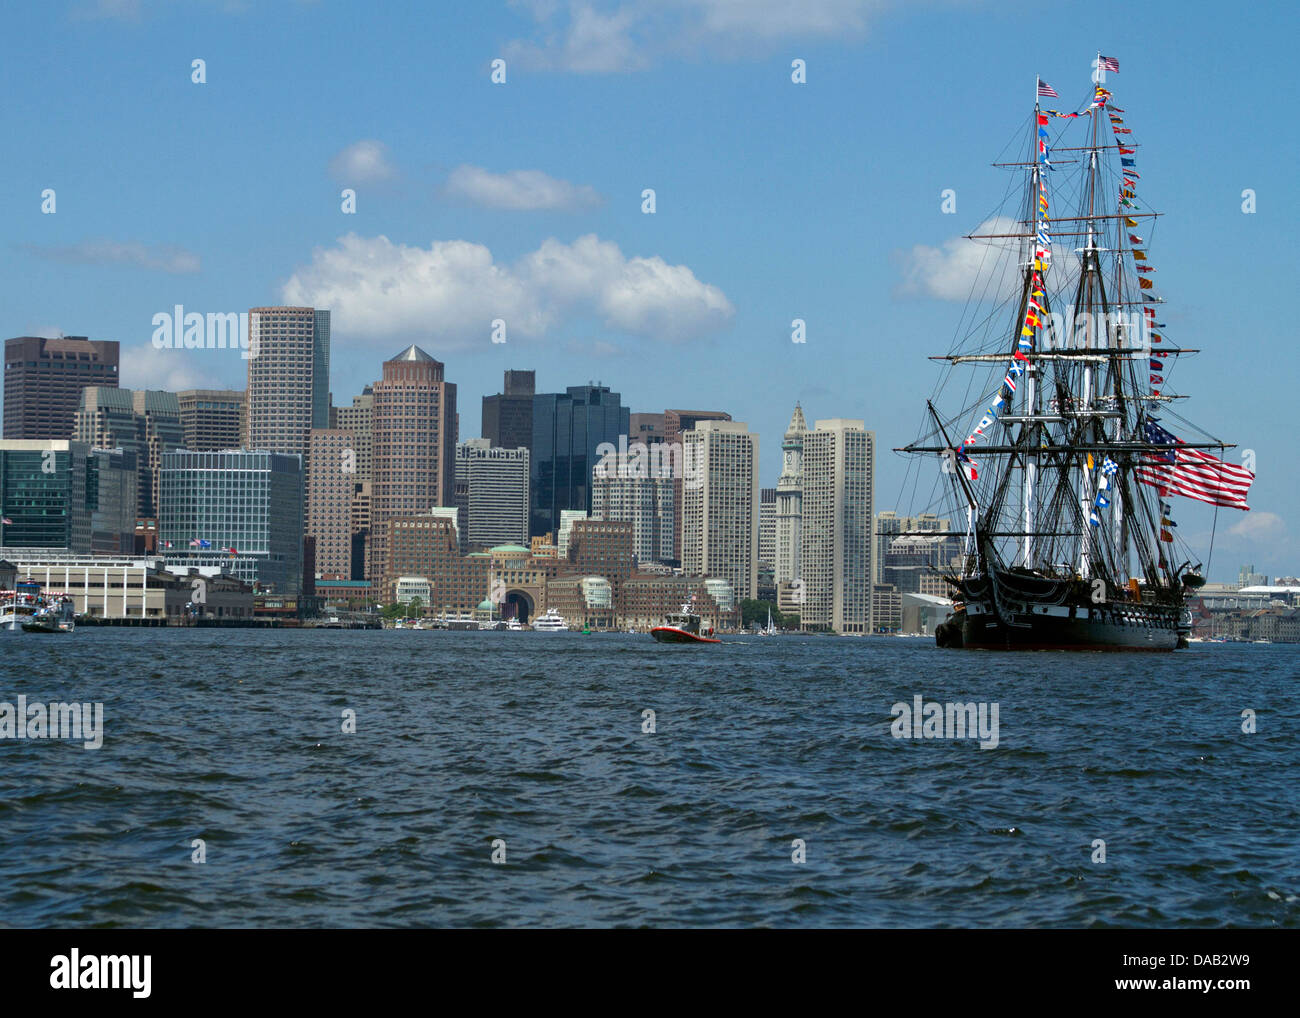 USS Constitution gets underway to celebrate America's 237th birthday for the ship's annual 4th of July turnaround - Stock Image